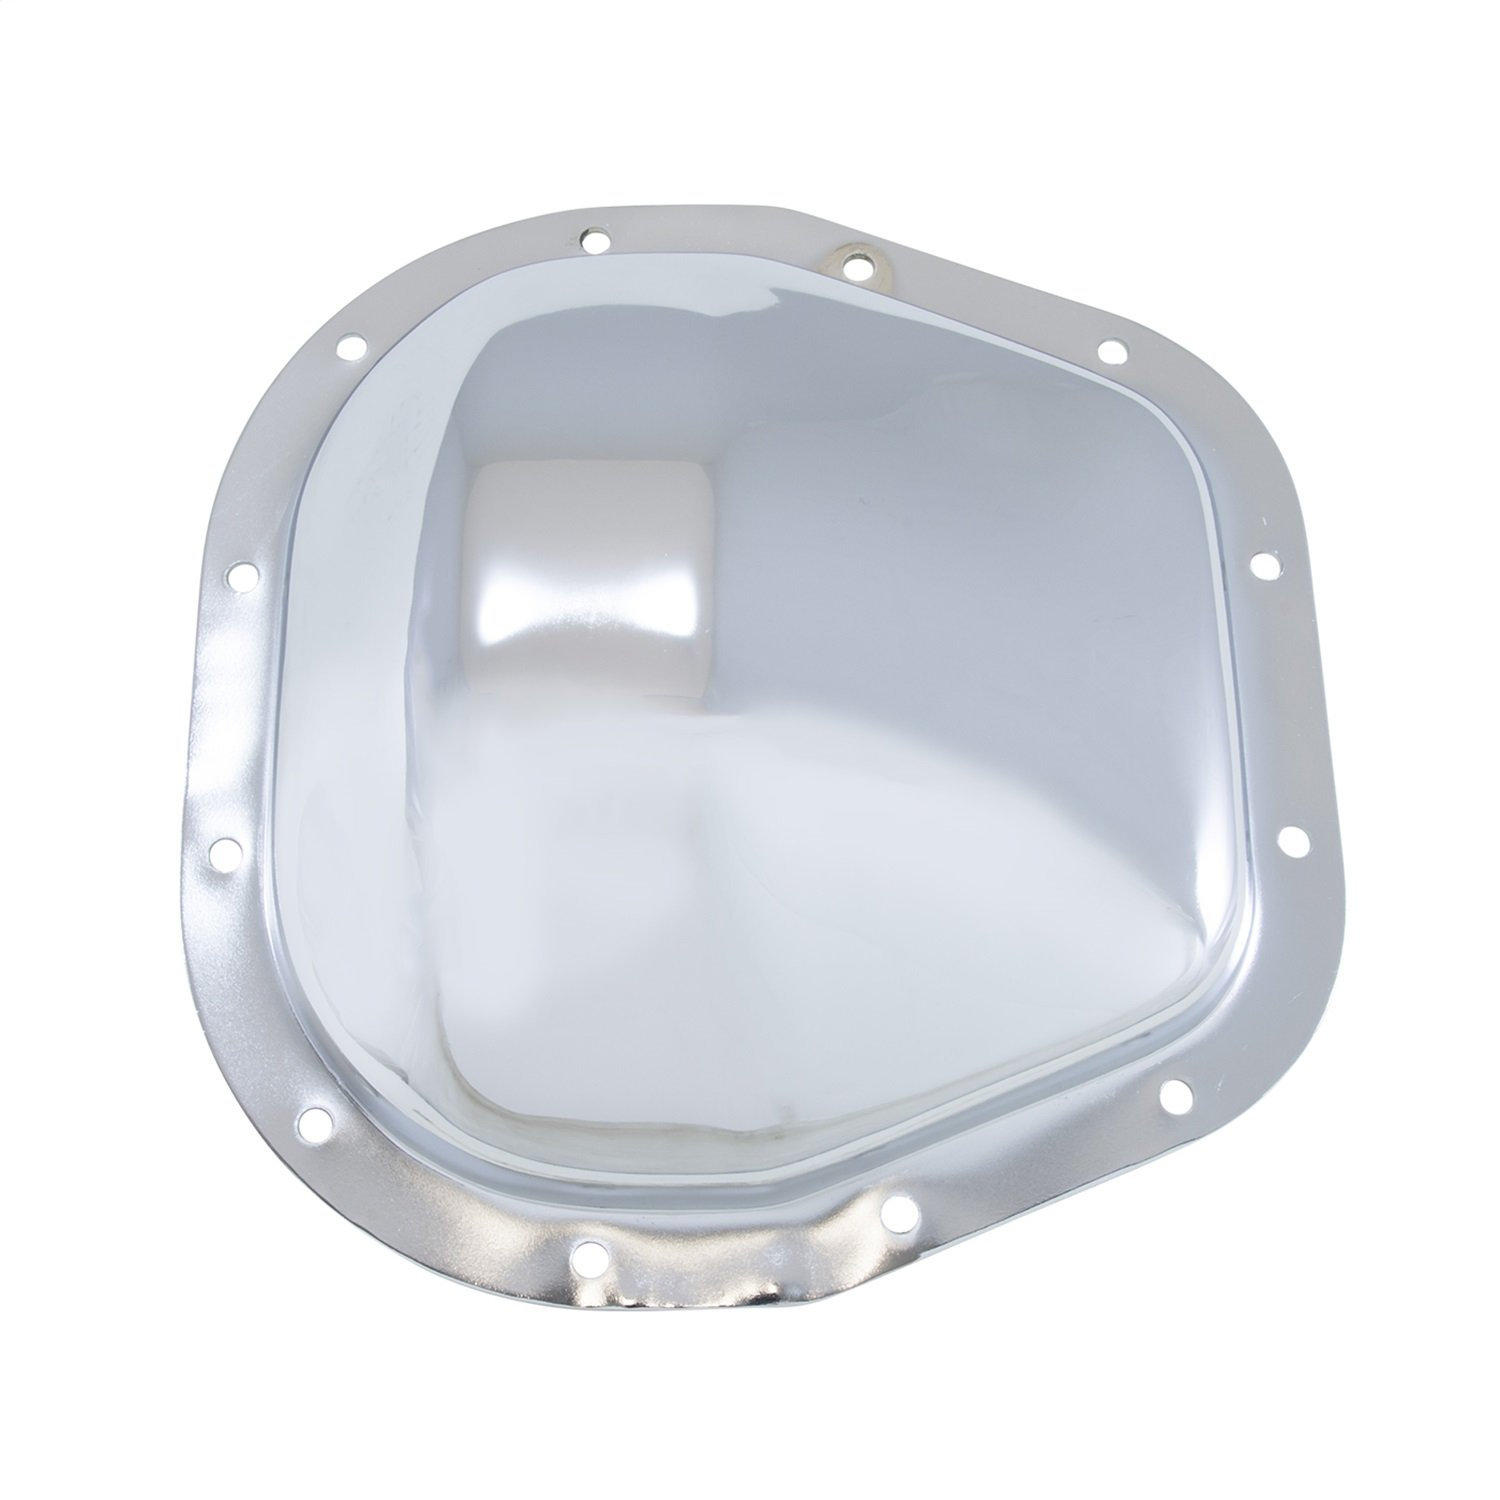 Chrome Cover for Ford 10.25 Differential Yukon Gear /& Axle YP C1-F10.25